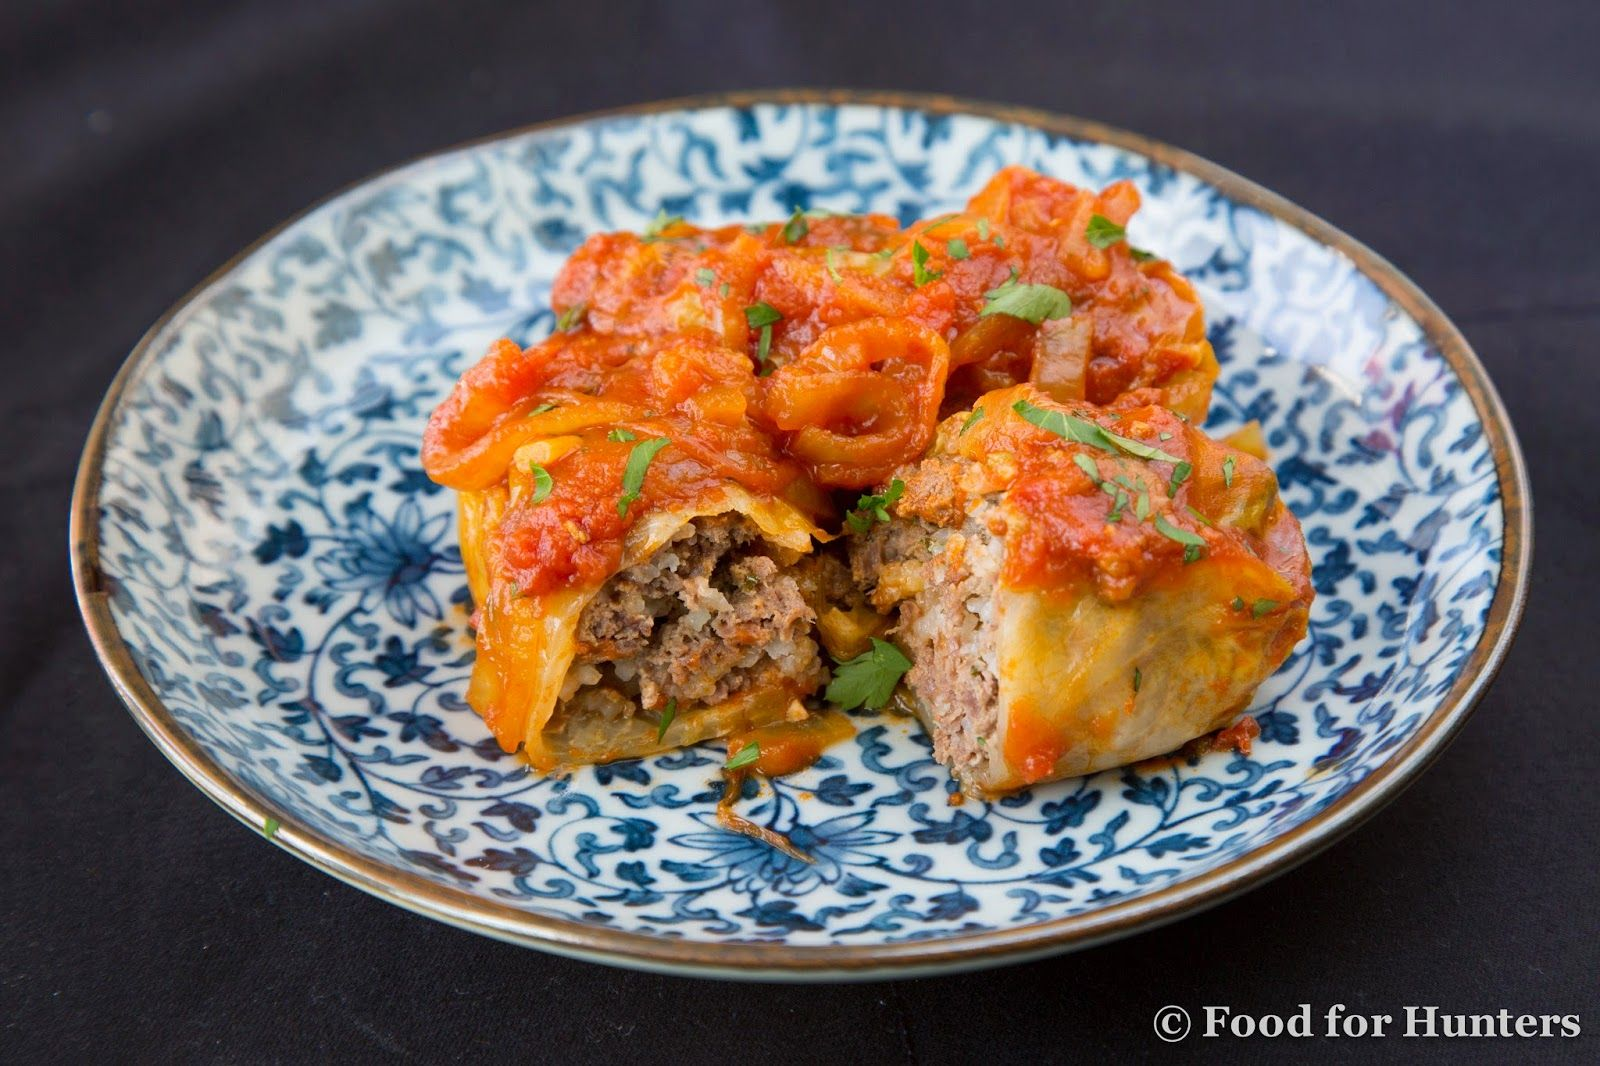 Food for Hunters: Venison Cabbage Rolls